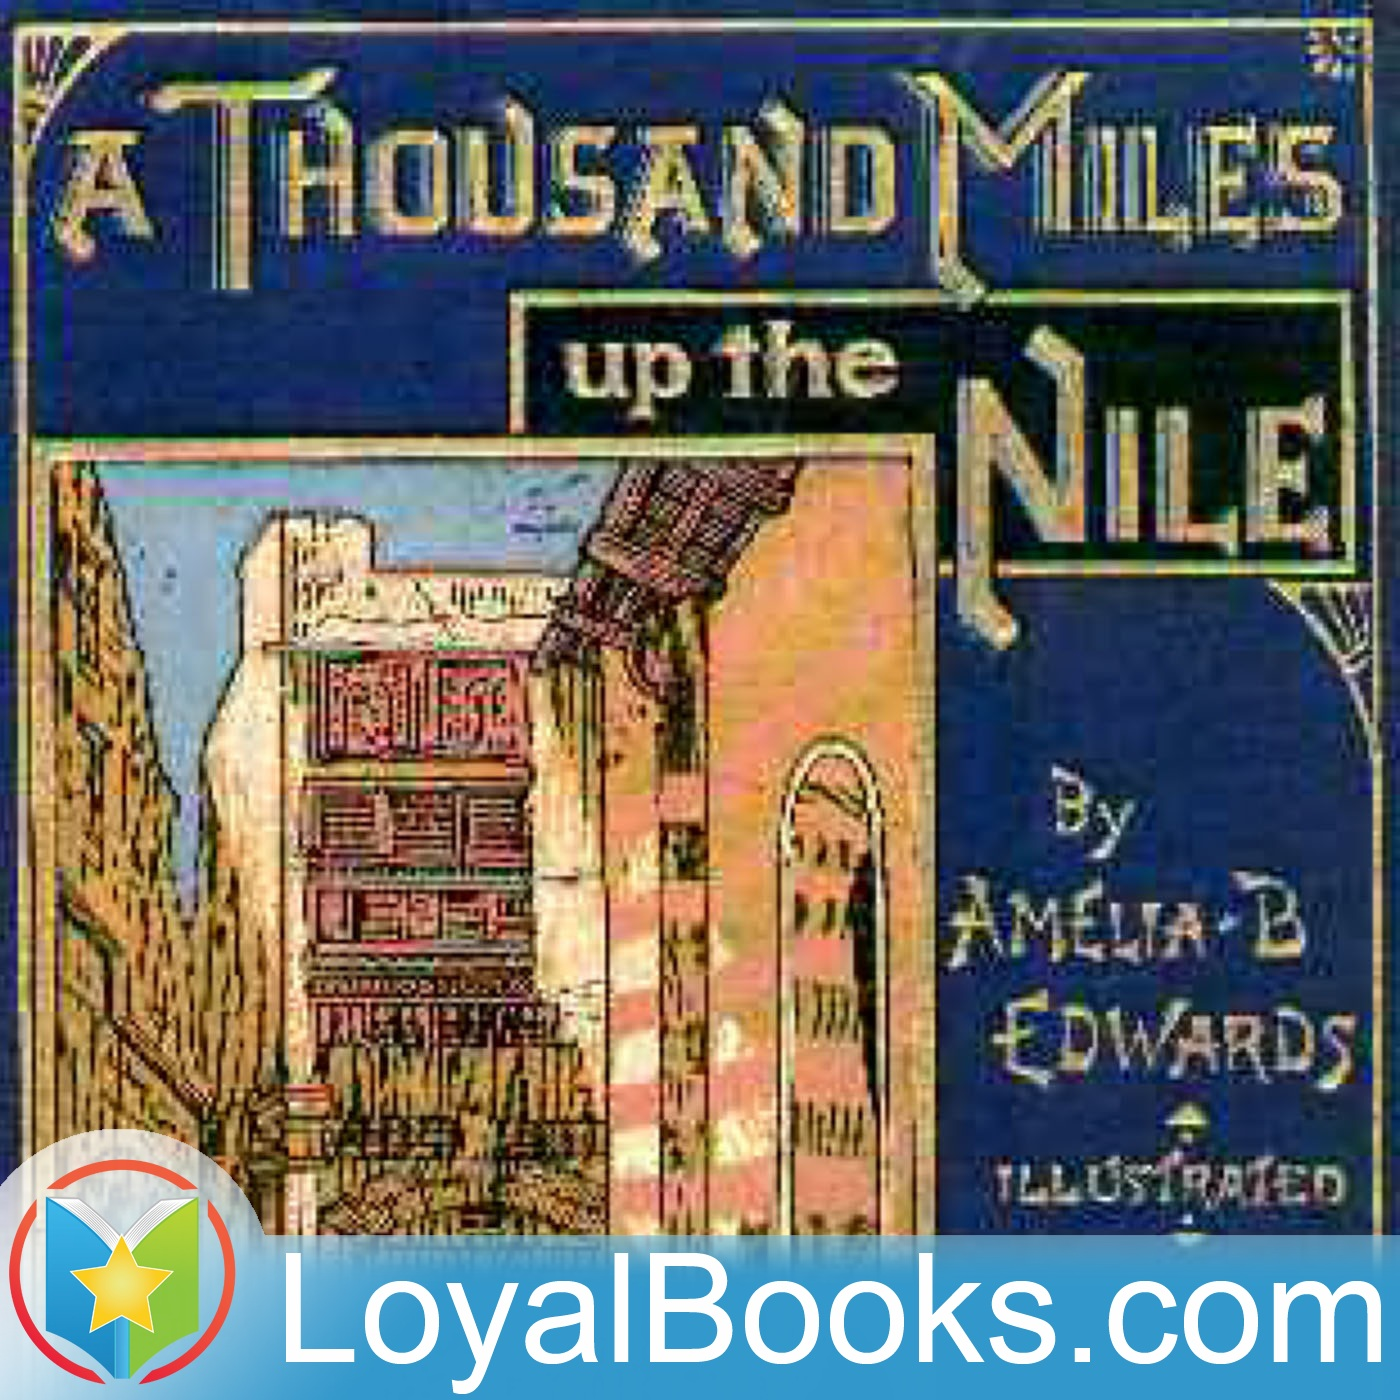 <![CDATA[A Thousand Miles up the Nile by Amelia B. Edwards]]>